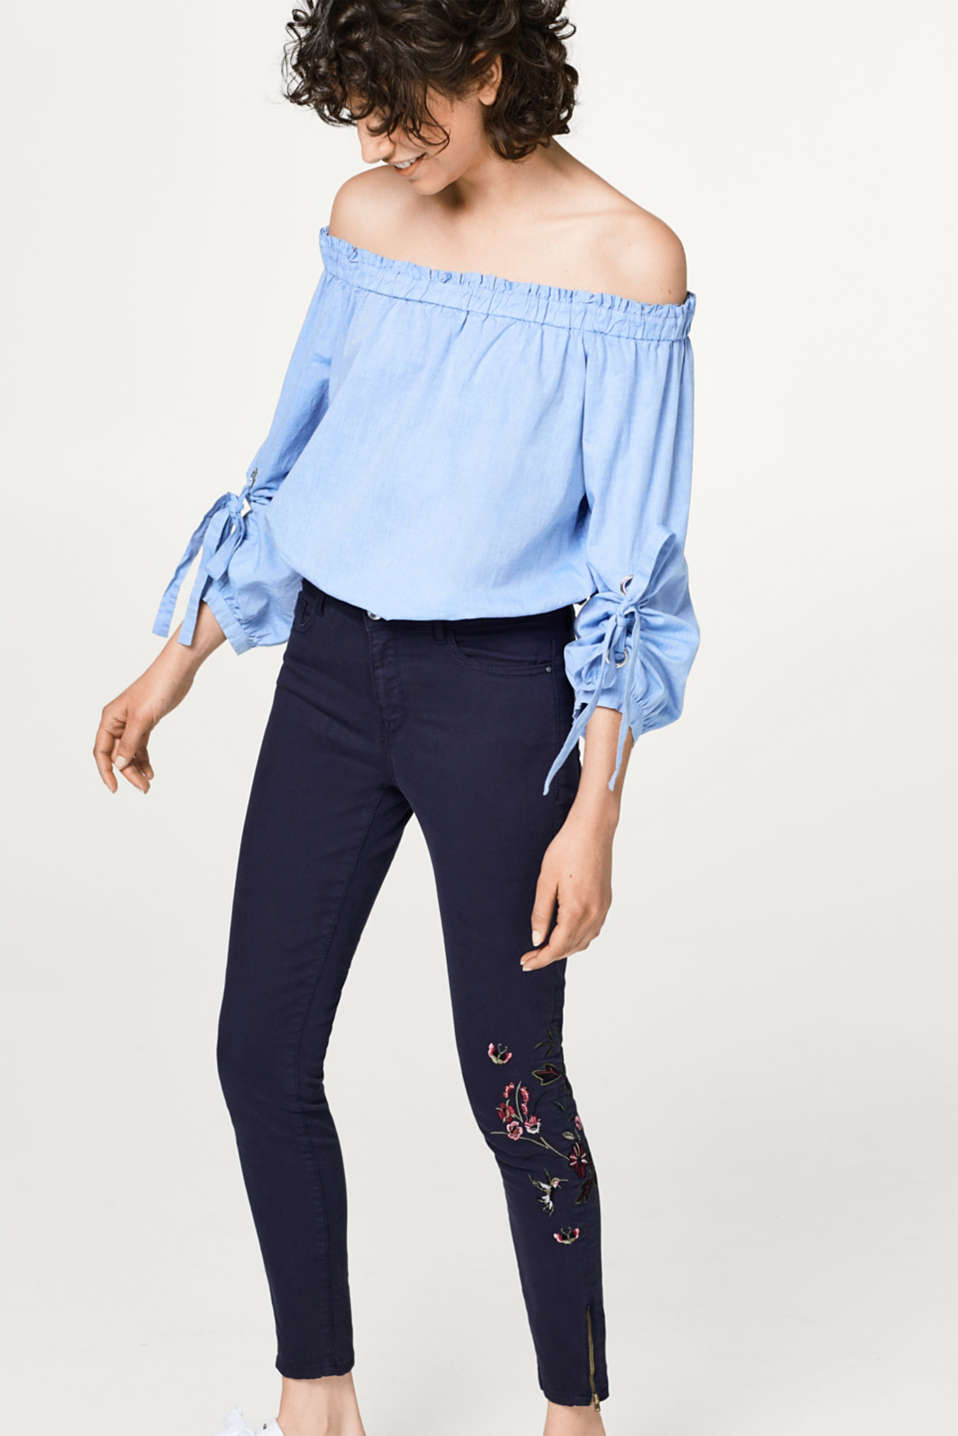 Esprit - Super stretch jeans with feminine floral embroidery